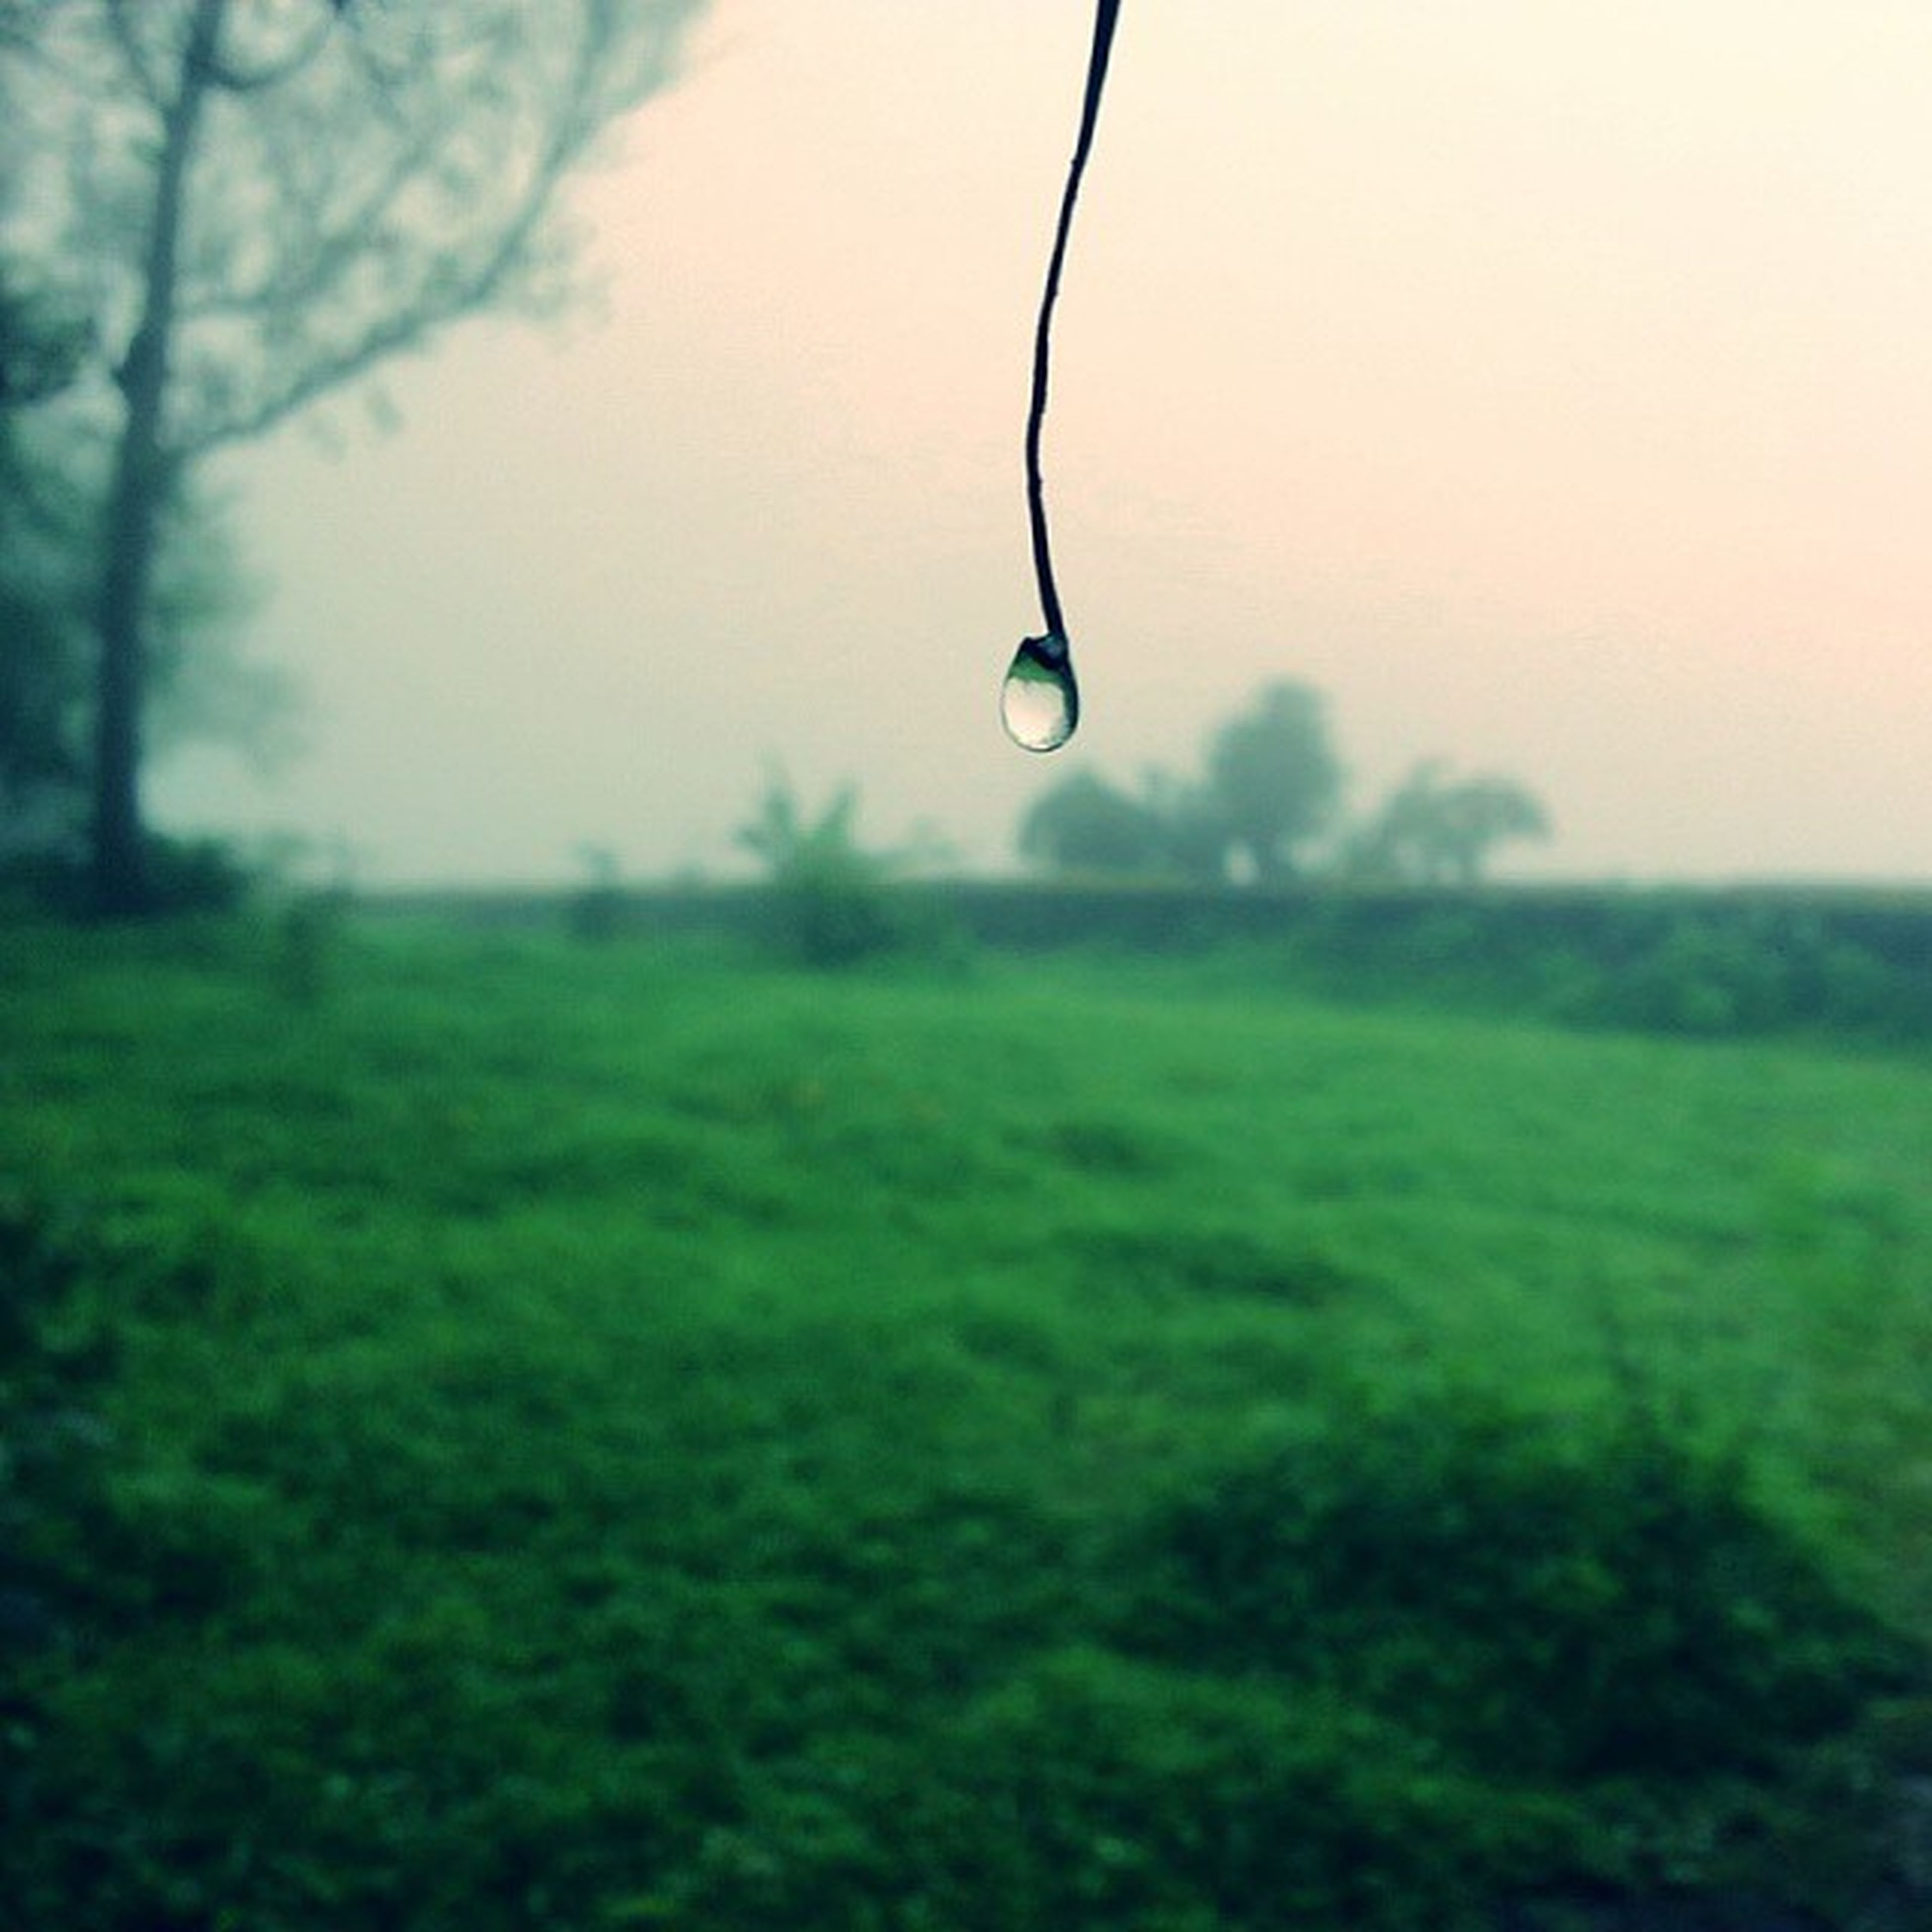 drop, water, focus on foreground, nature, grass, beauty in nature, close-up, wet, fragility, tranquility, selective focus, green color, transparent, sky, dew, mid-air, growth, water drop, raindrop, tranquil scene